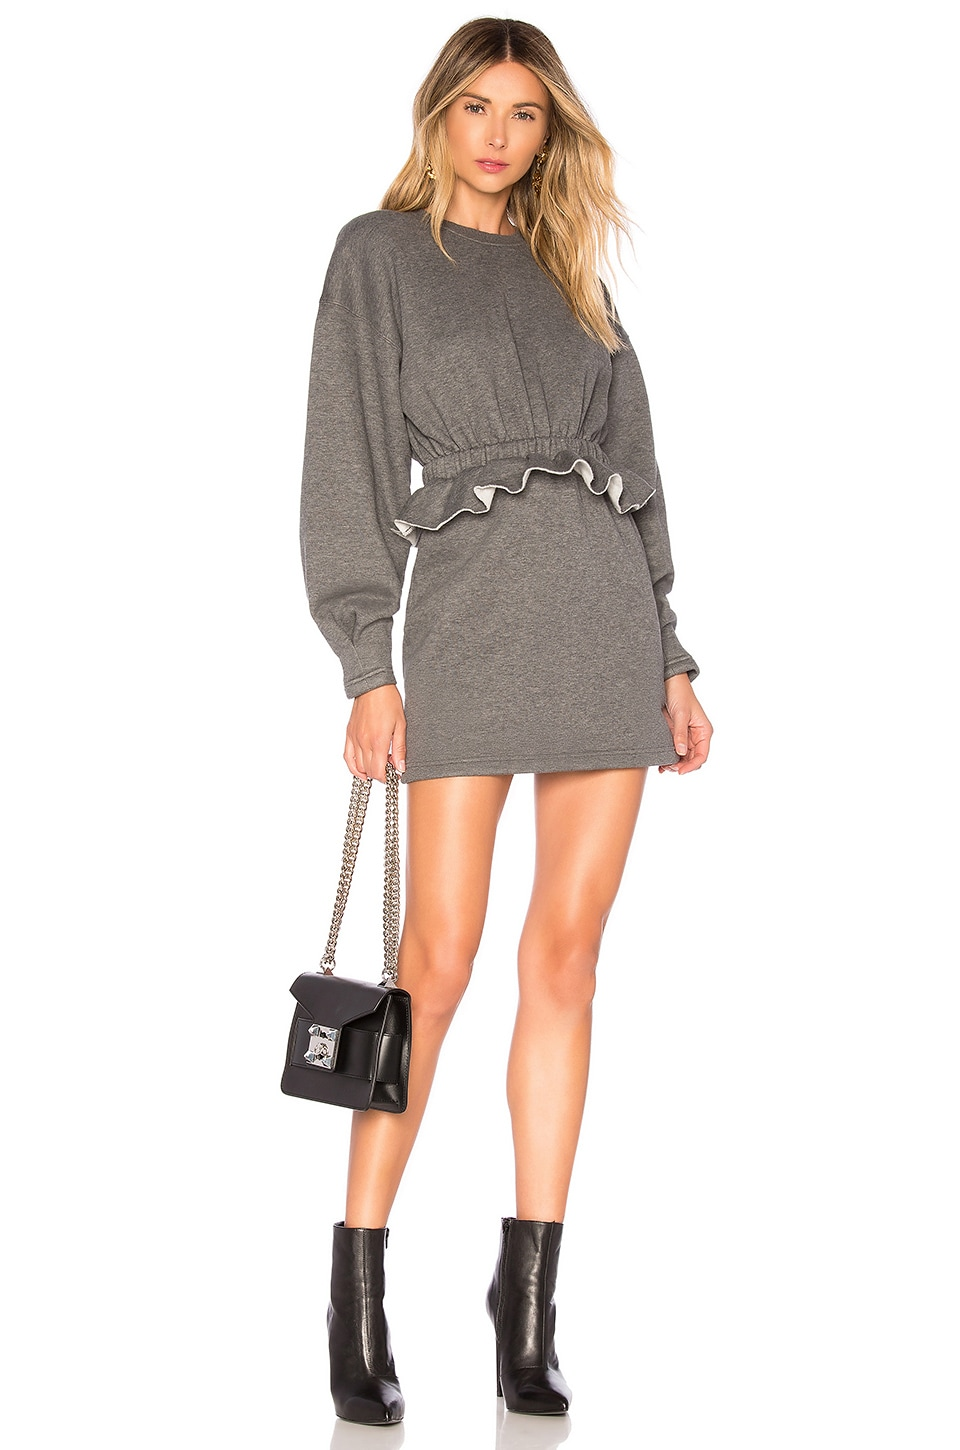 L'Academie The Jesse Mini Dress in Charcoal Grey